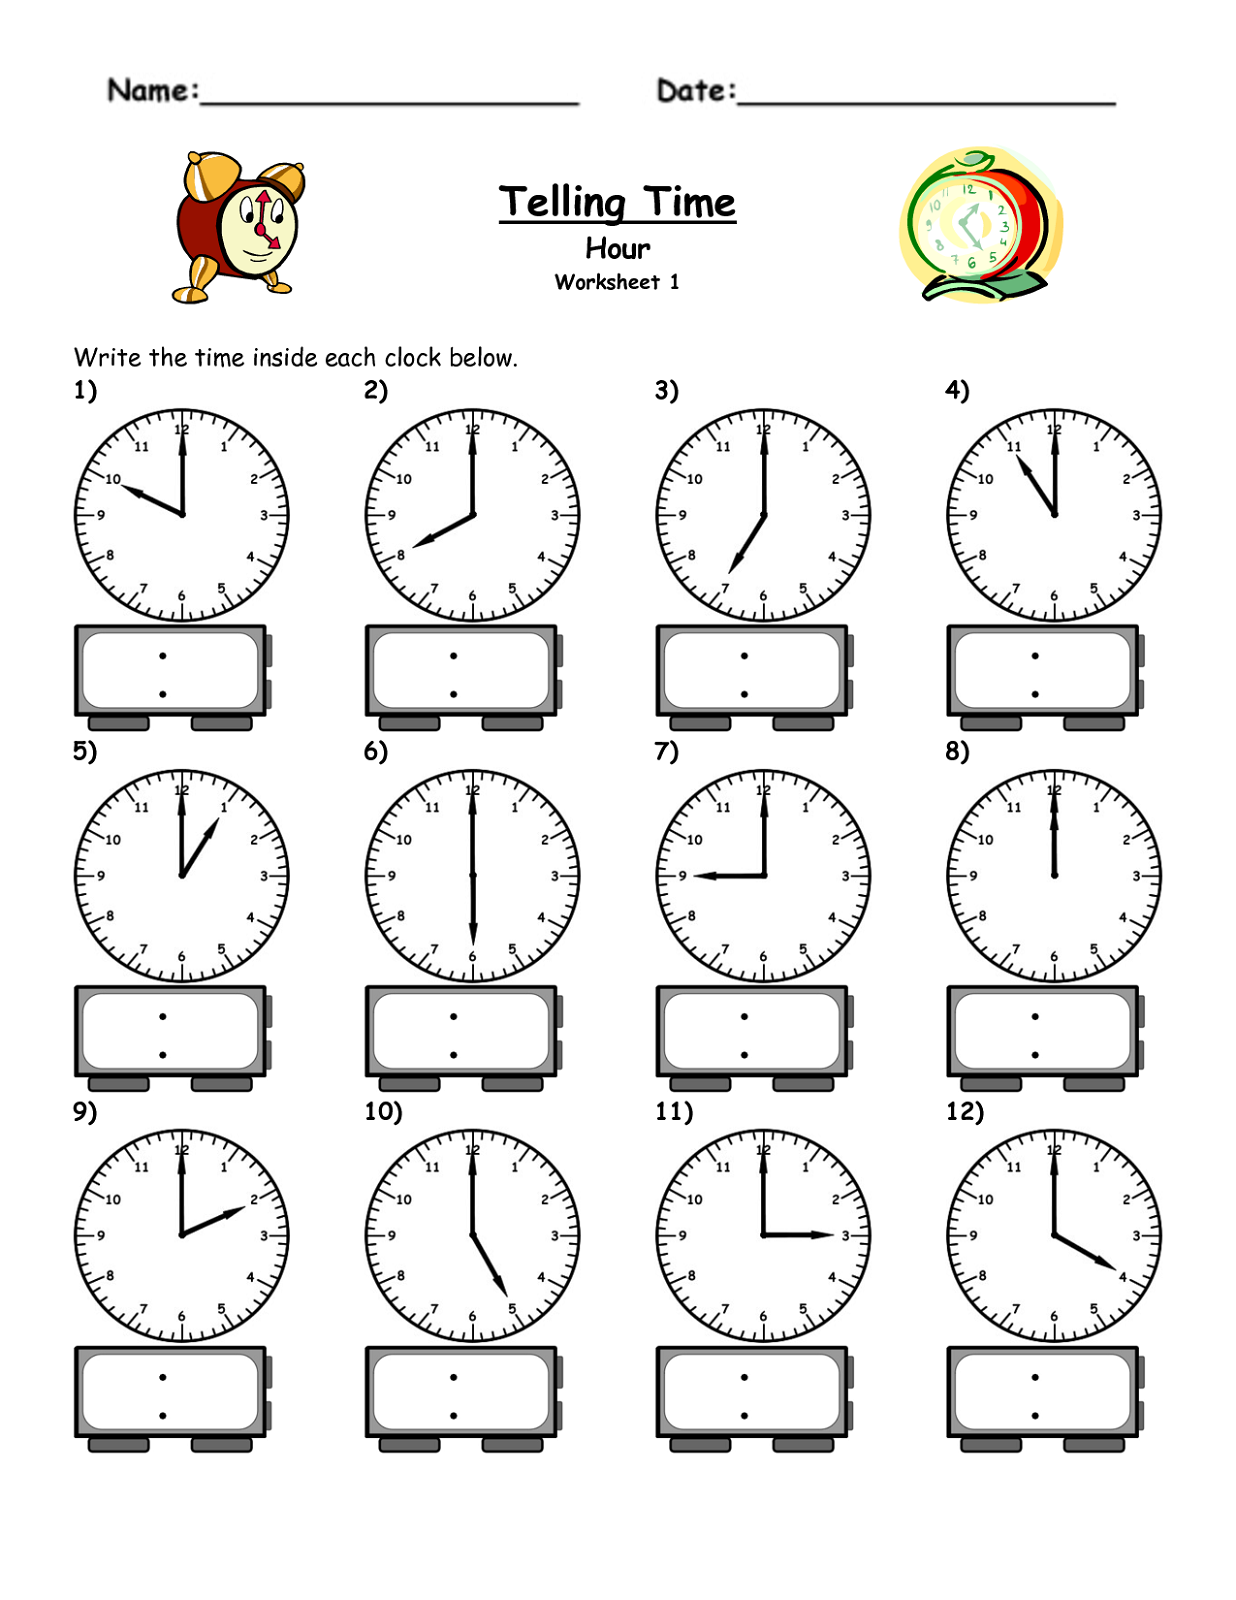 Worksheets Telling Time Worksheets Free worksheet 33002546 telling time worksheets kindergarten free printable clock davezan kindergarten